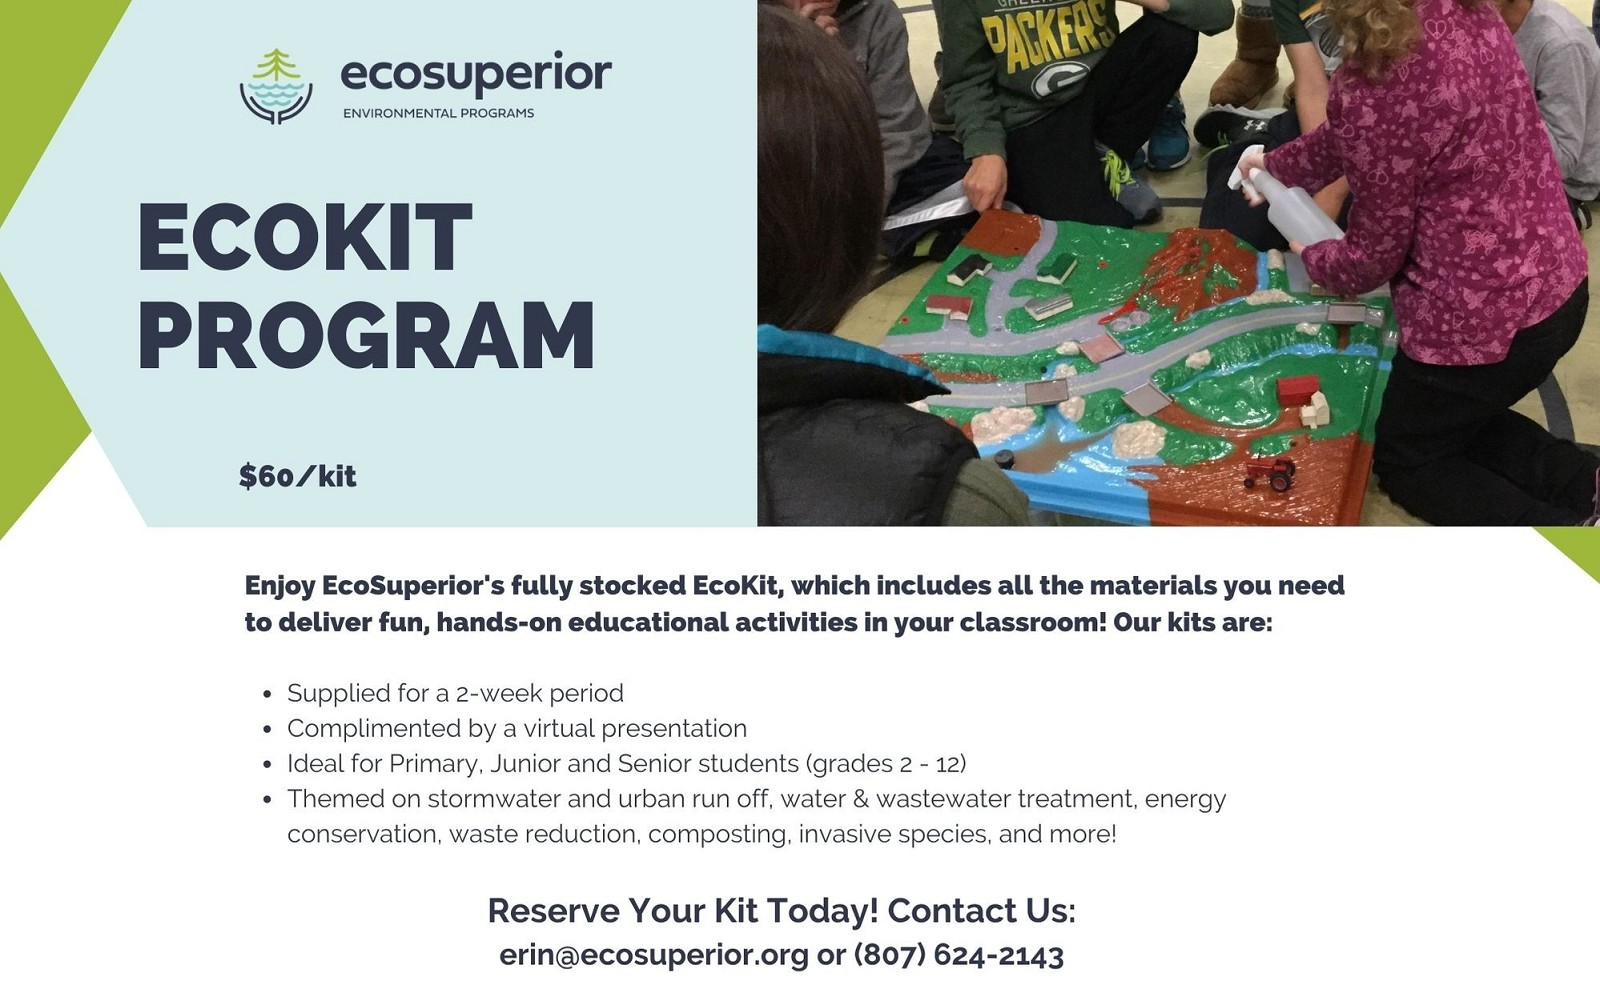 walleyead_ecokitlendingprogram